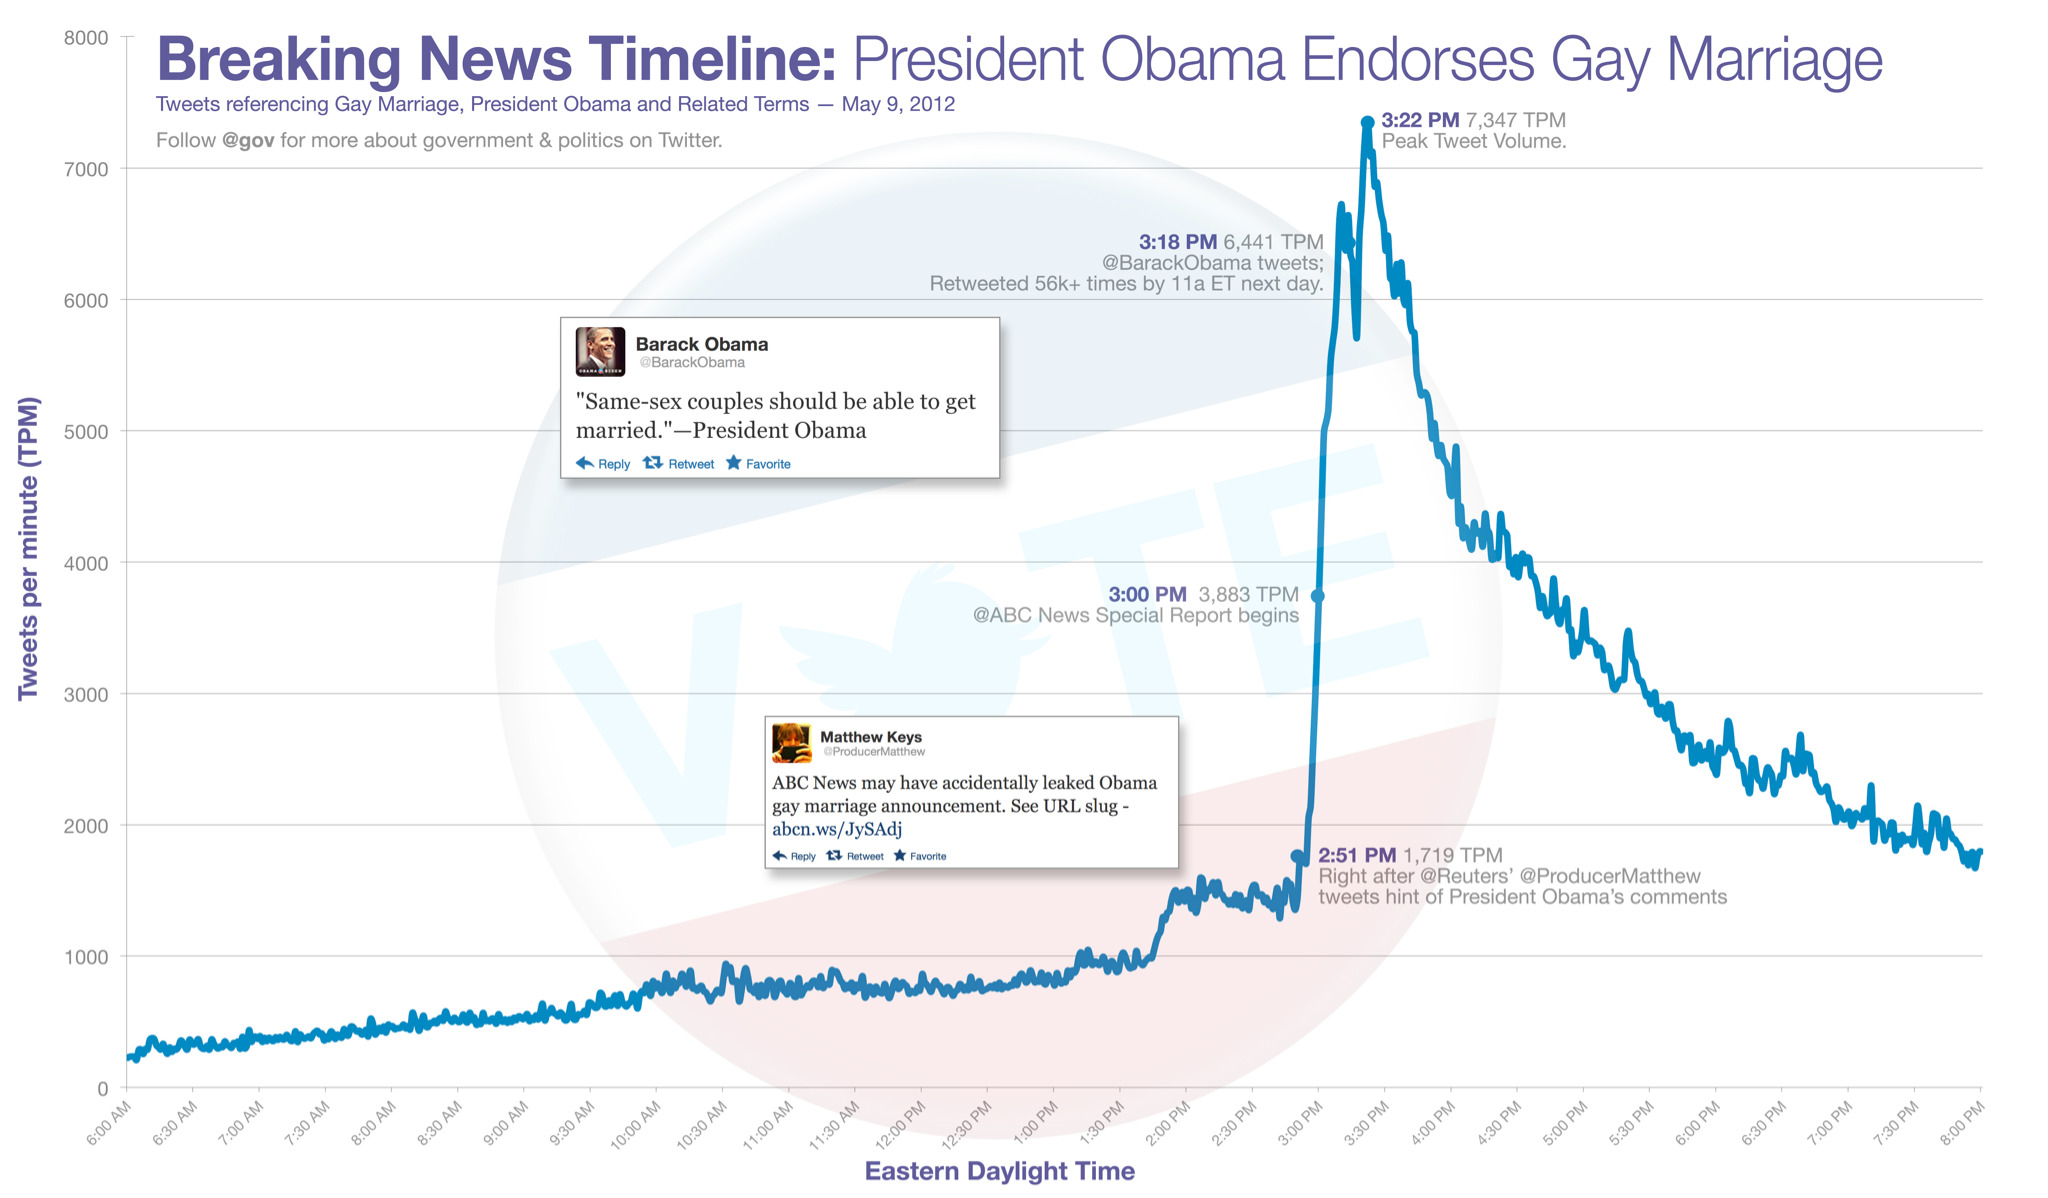 Gay marriage conversation peaked at 7,347 Tweets per minute at 3:22p ET yesterday. CHART: http://t.co/BPfRQY0x